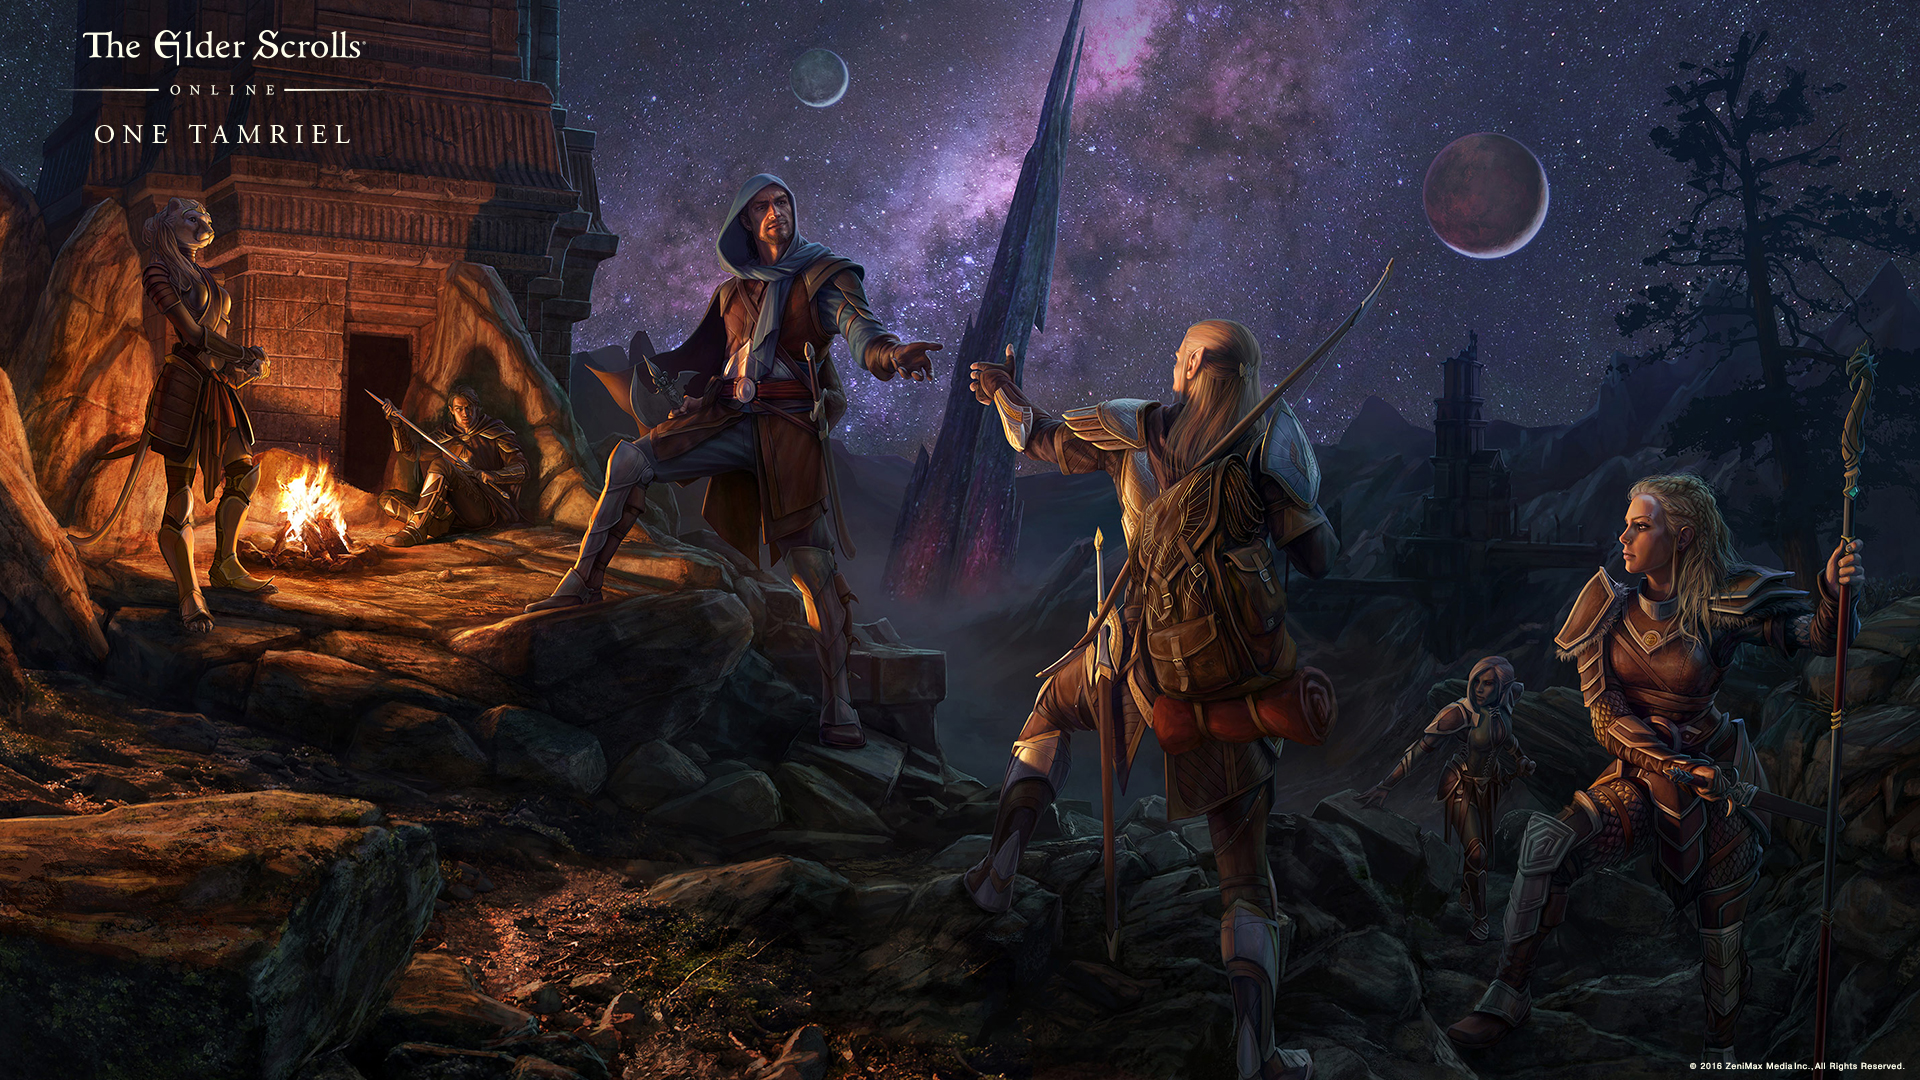 Update 12 Brings Players Together in One Tamriel for PCMac   The 1920x1080